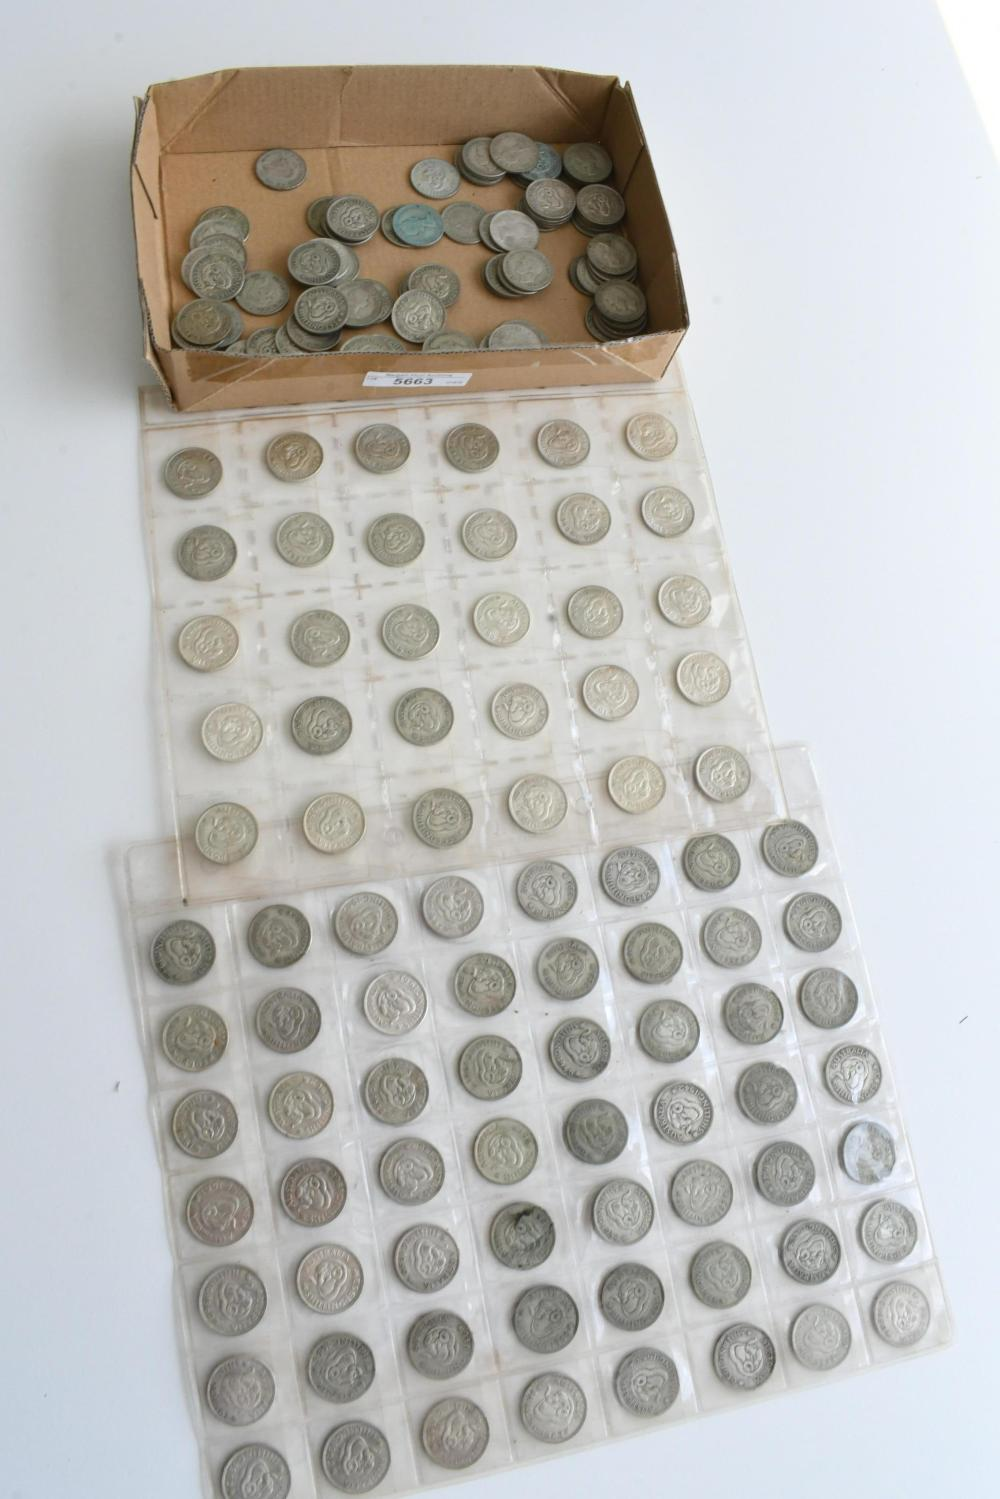 Approx. 182 Australian shilling coins